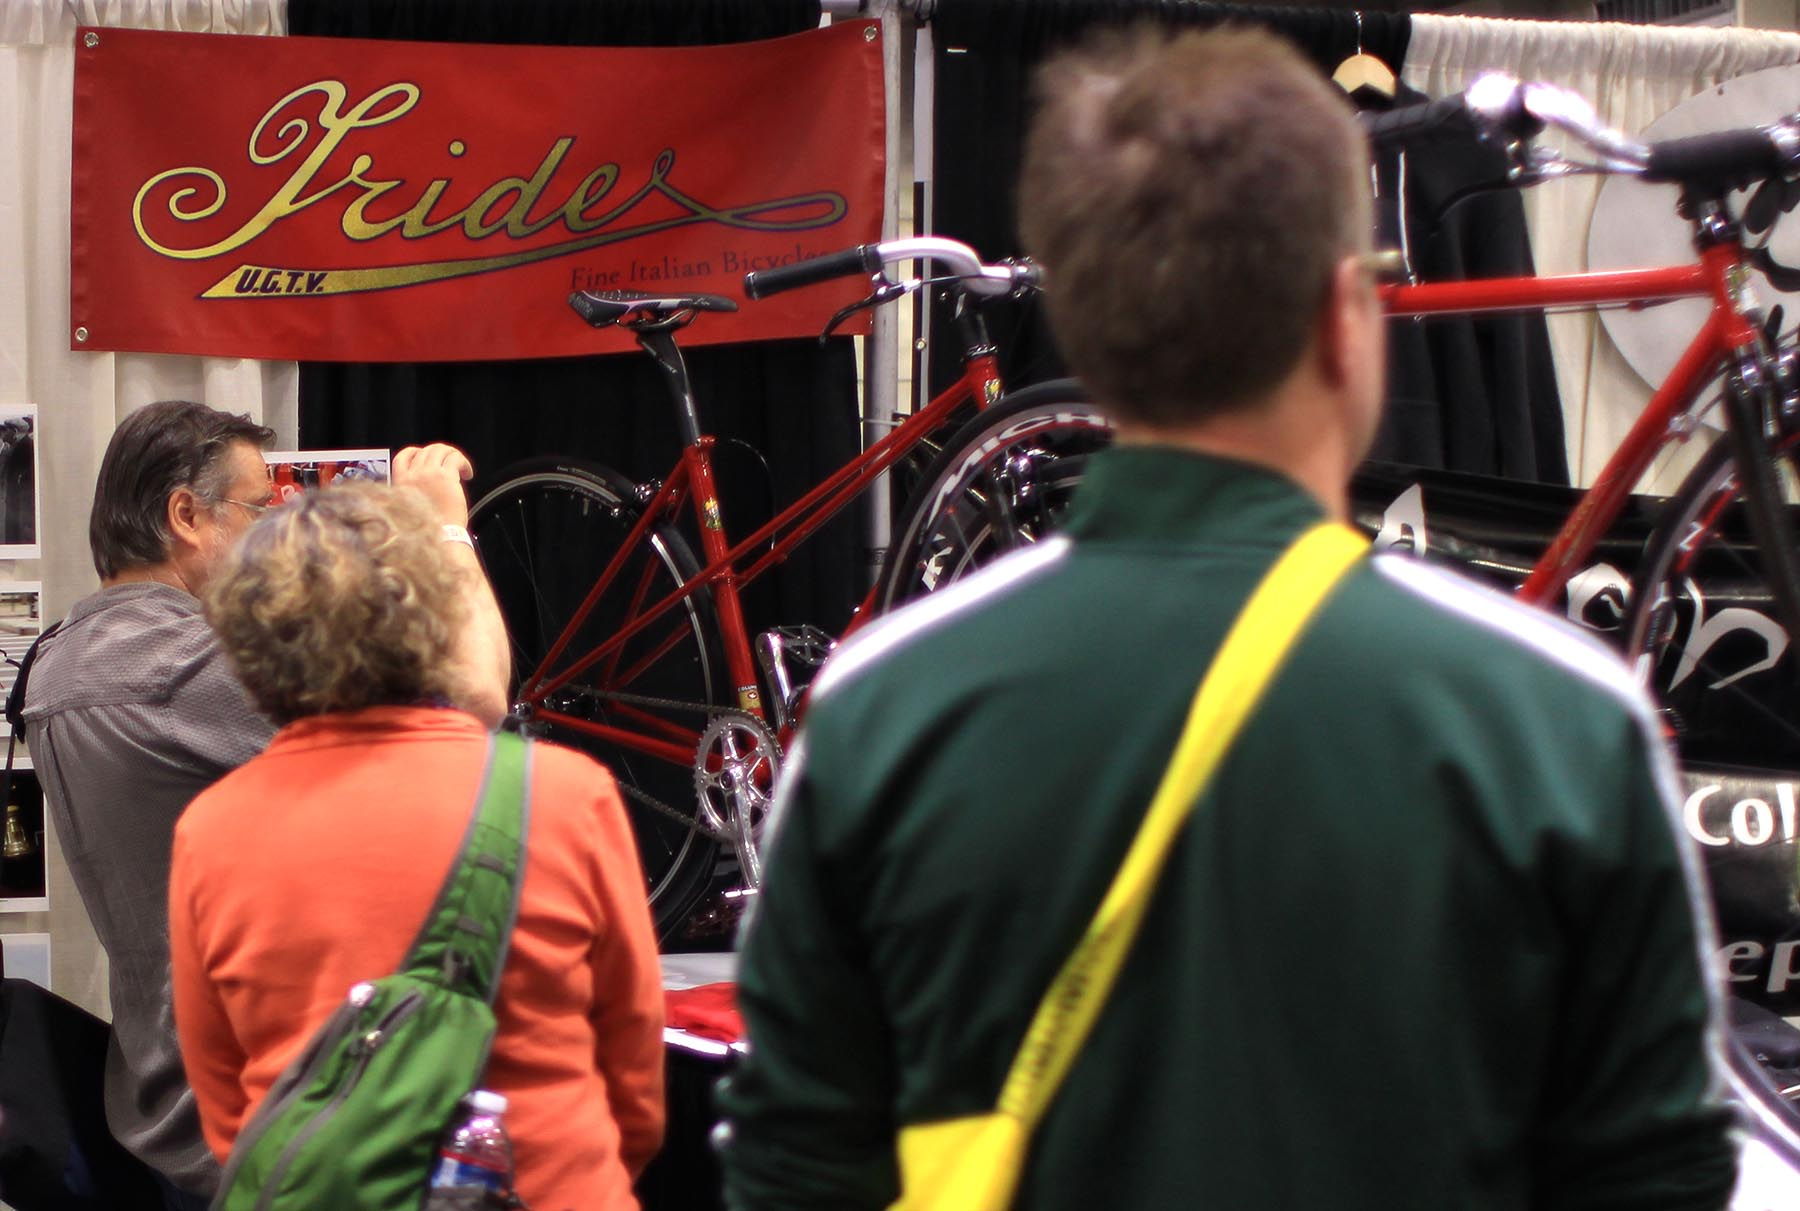 where Iride bicycles inspire the imagination